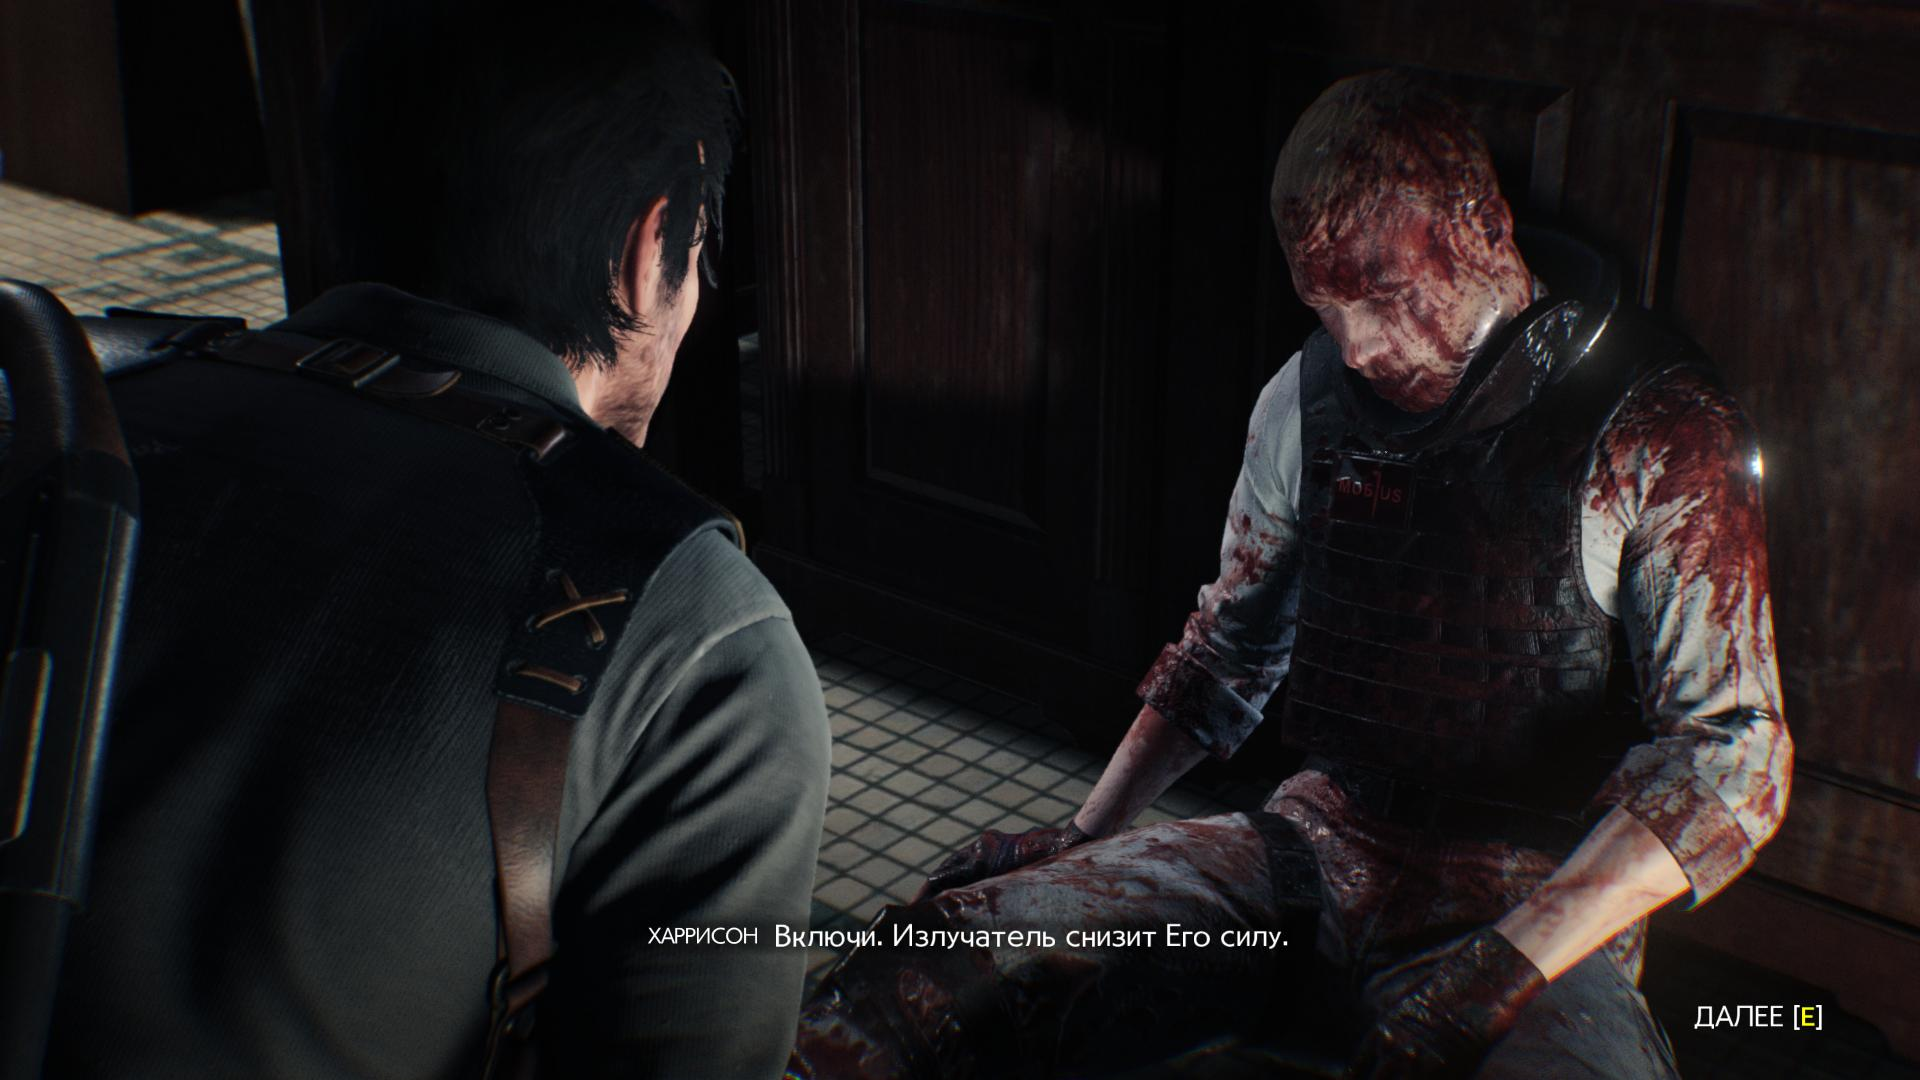 00074.Jpg - Evil Within 2, the